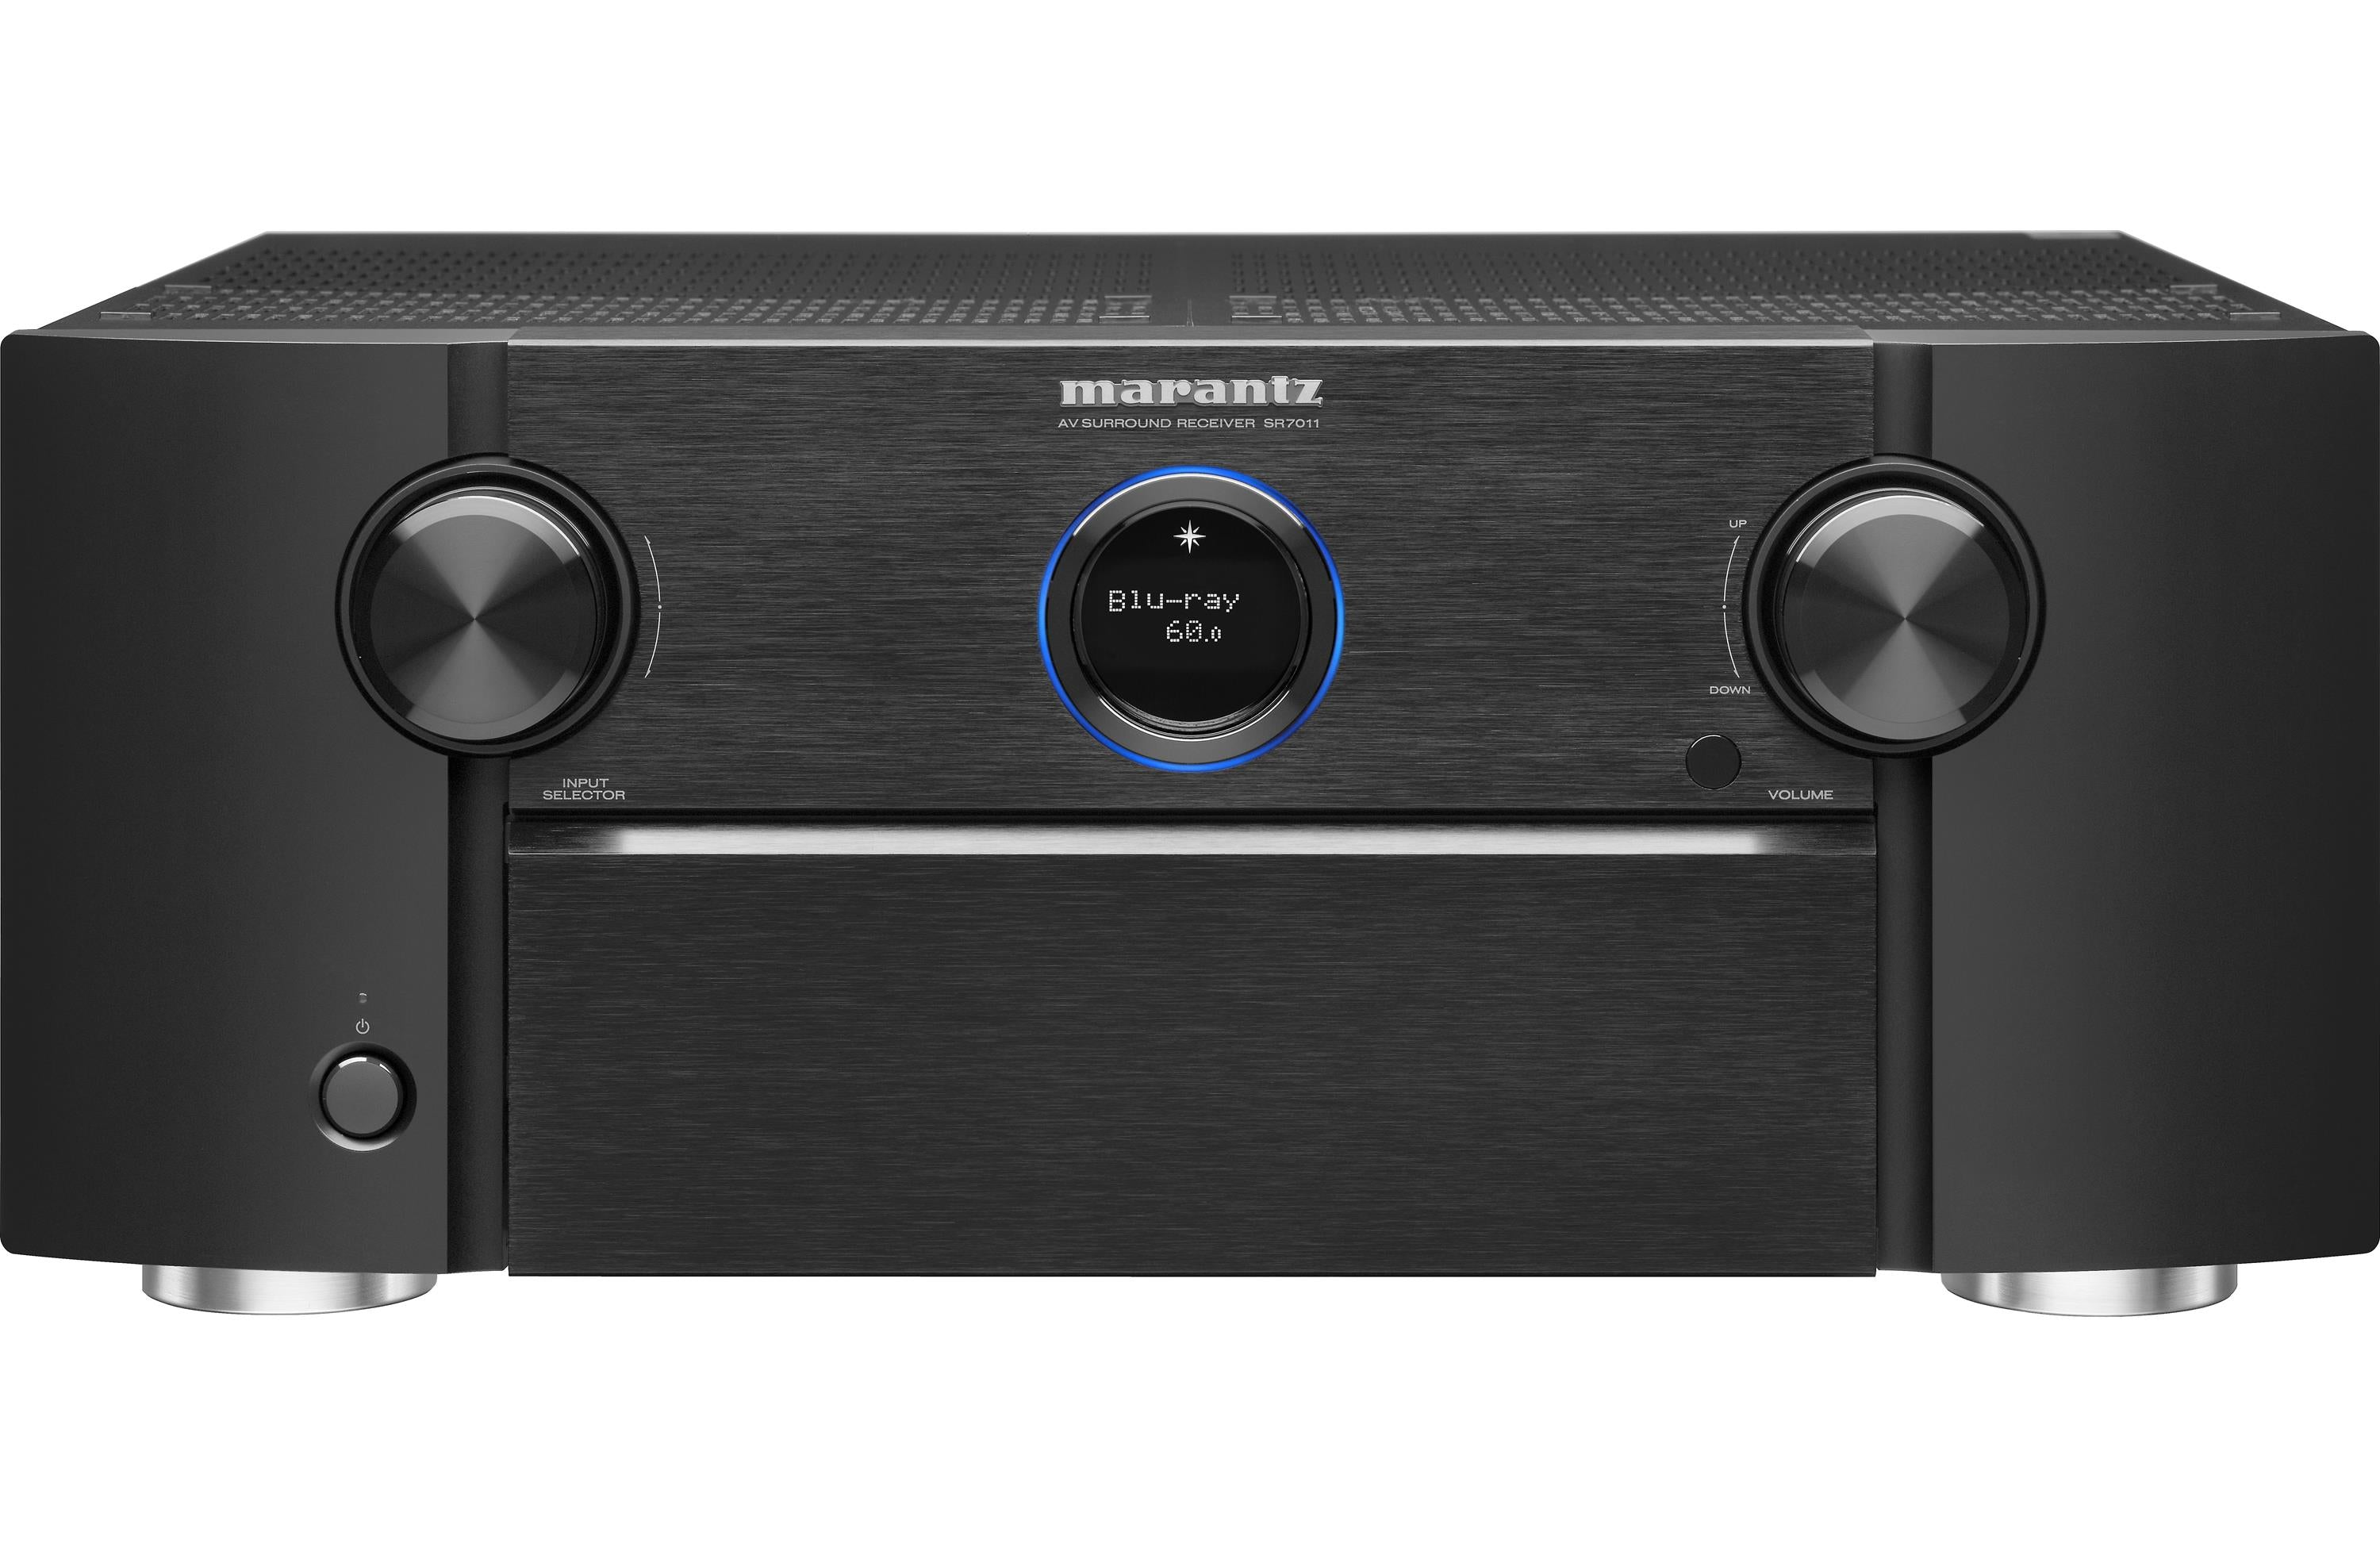 Audio Enhancement For Analog Amplifier Marantz Sr7013 92 Avr W Dolby Atmos Full 4k Ultra Hd Wi Fi Blueto Aperion